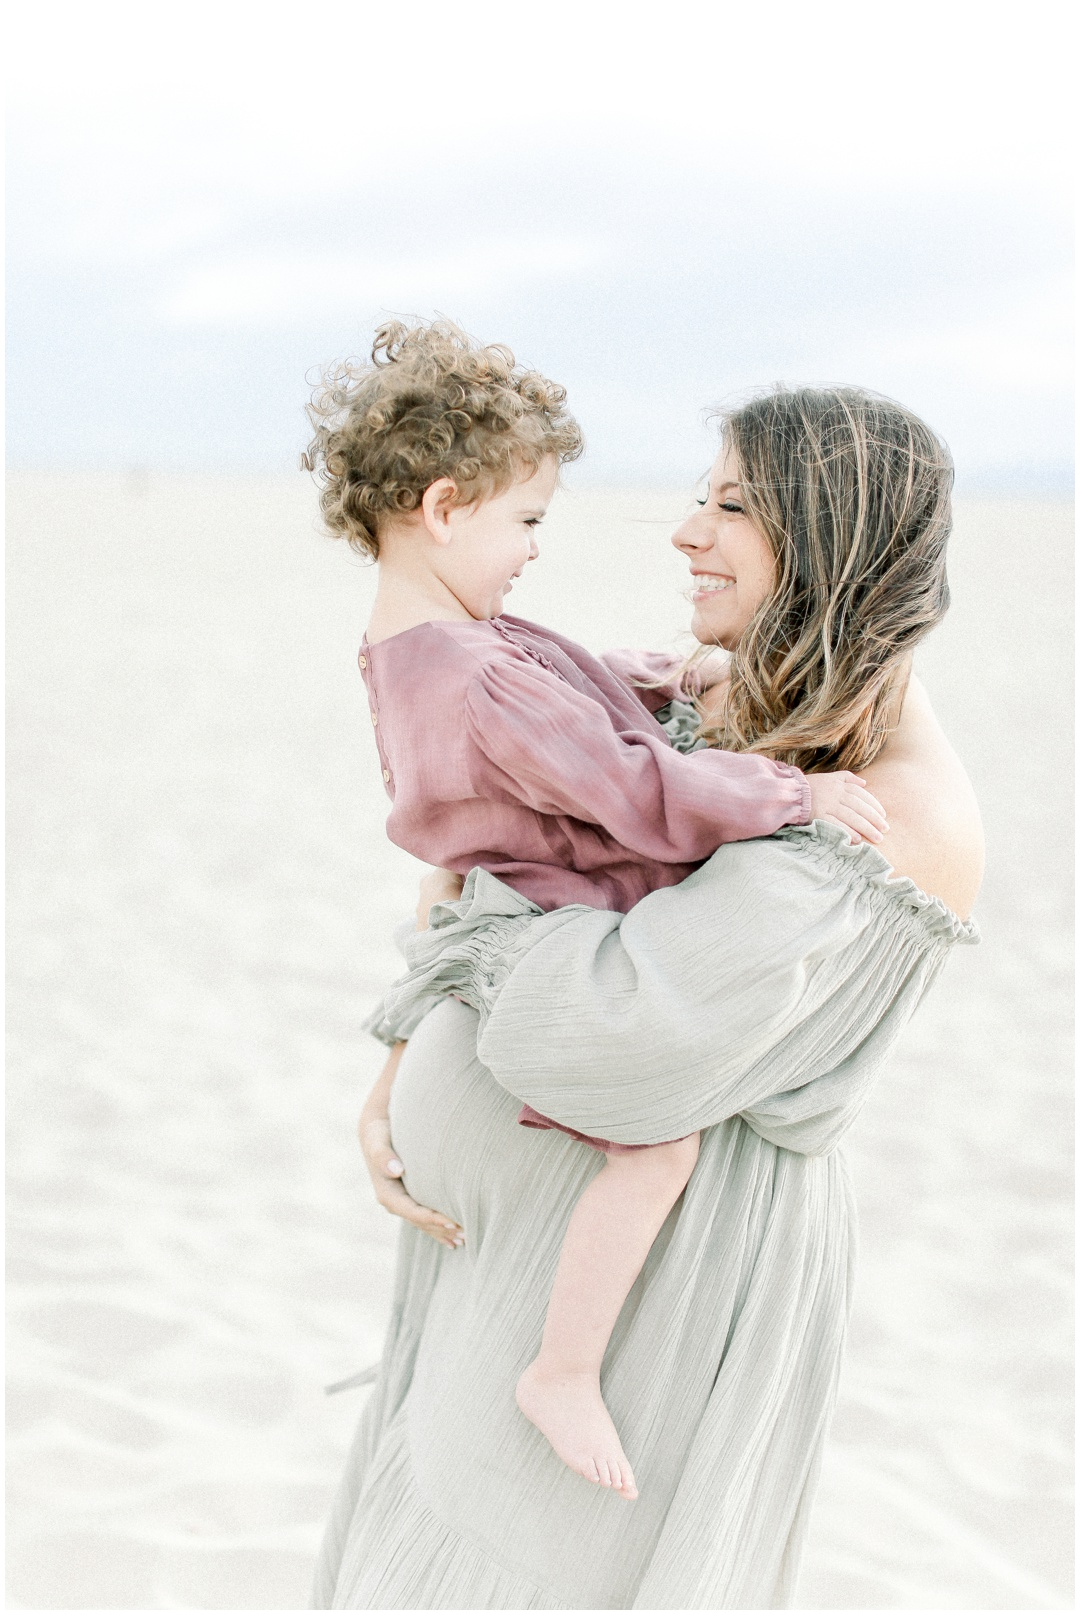 Newport_Beach_Newborn_Light_Airy_Natural_Photographer_Newport_Beach_Photographer_Orange_County_Family_Photographer_Cori_Kleckner_Photography_Huntington_Beach_Photographer_Family_OC_Newborn_Melissa_Scharf_Newborn_Family__3327.jpg